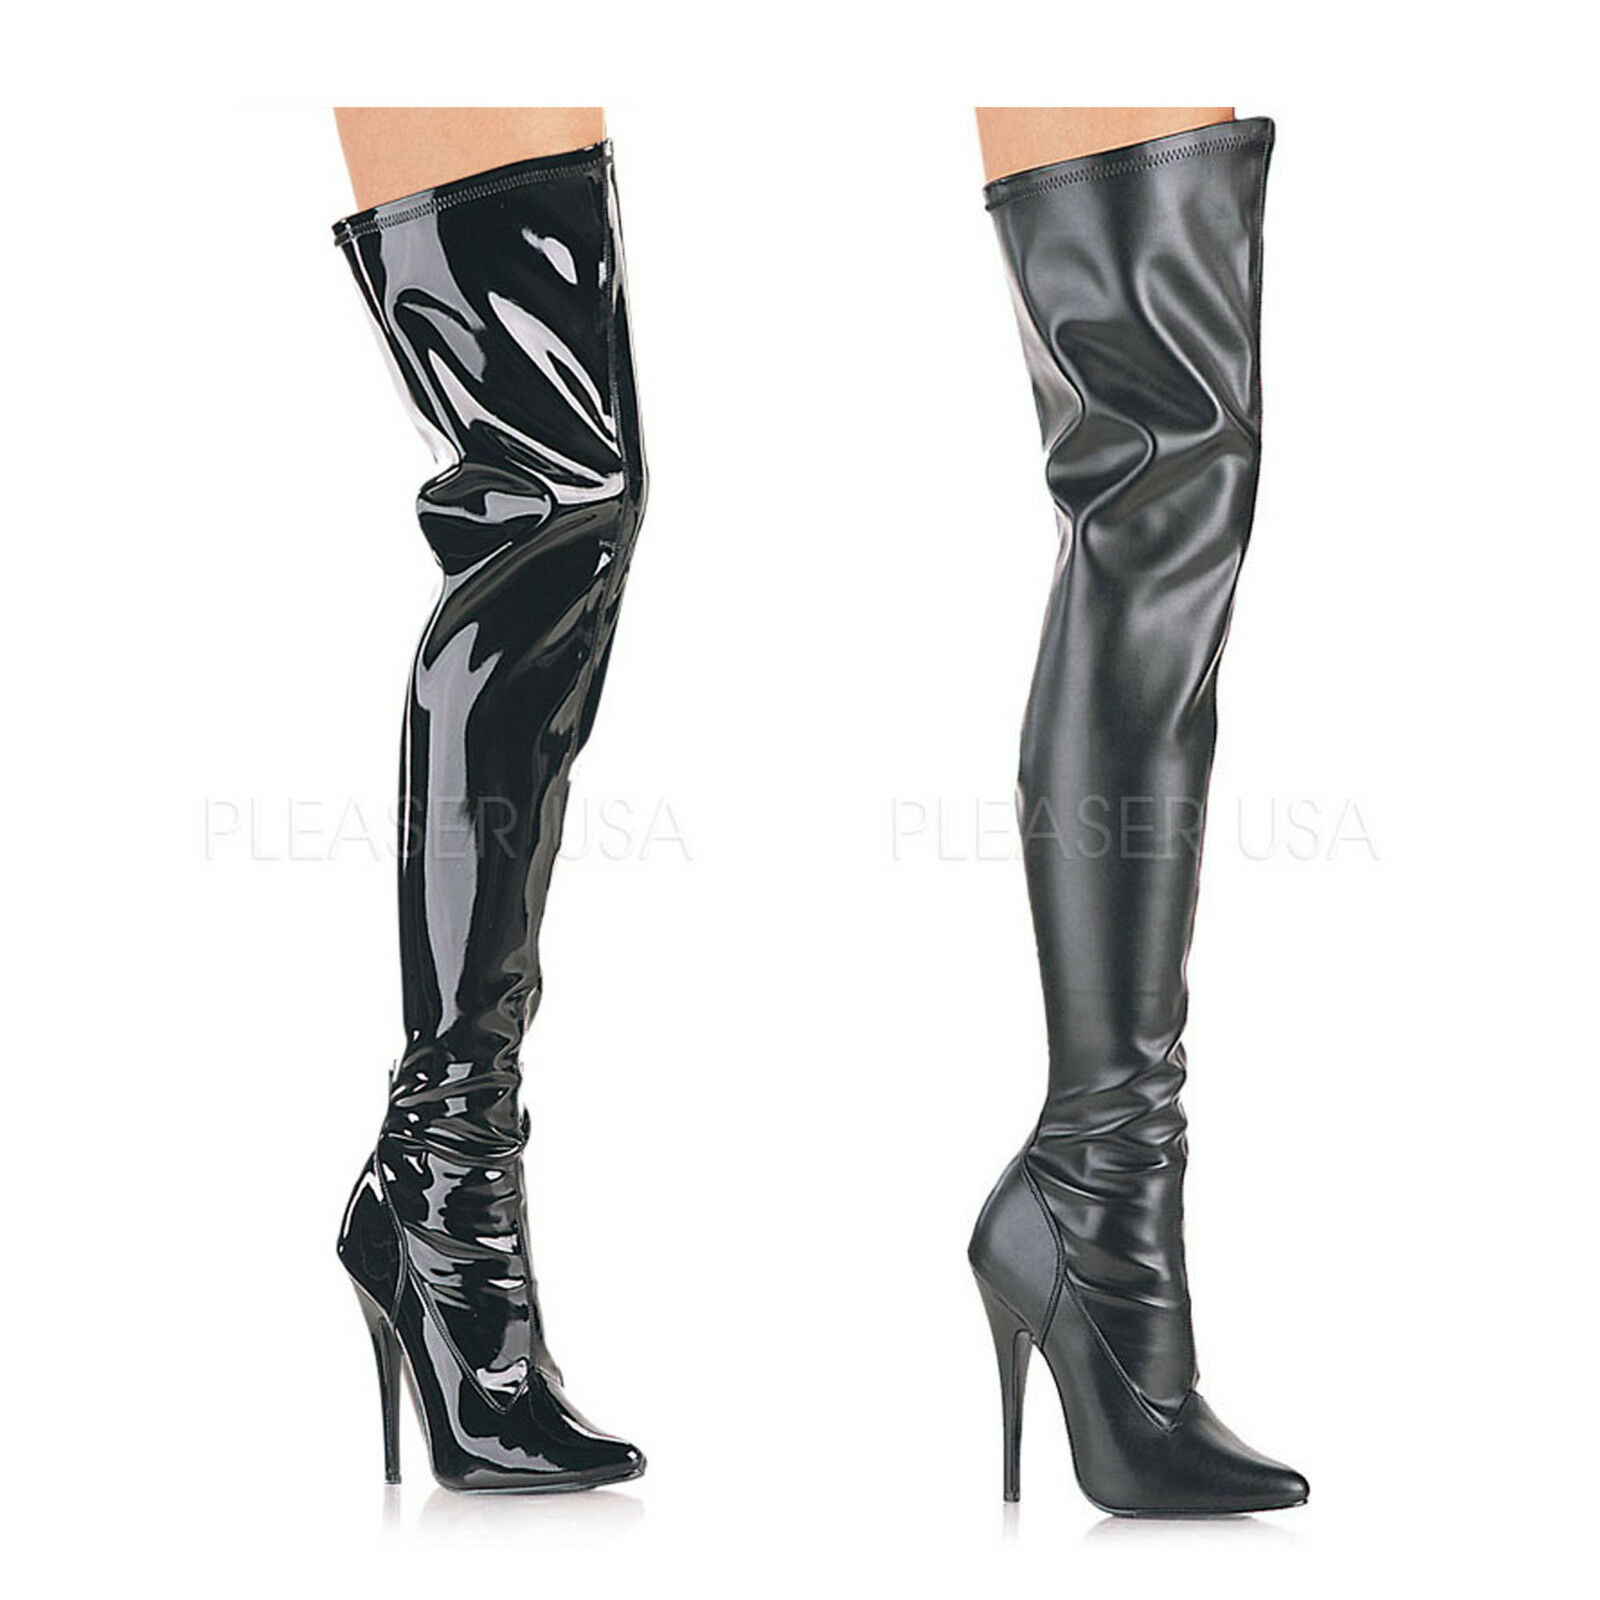 DEVIOUS - Domina-3000 Domina-3000 Domina-3000 Sexy Thigh High bottes With Inner Zipper af9fec